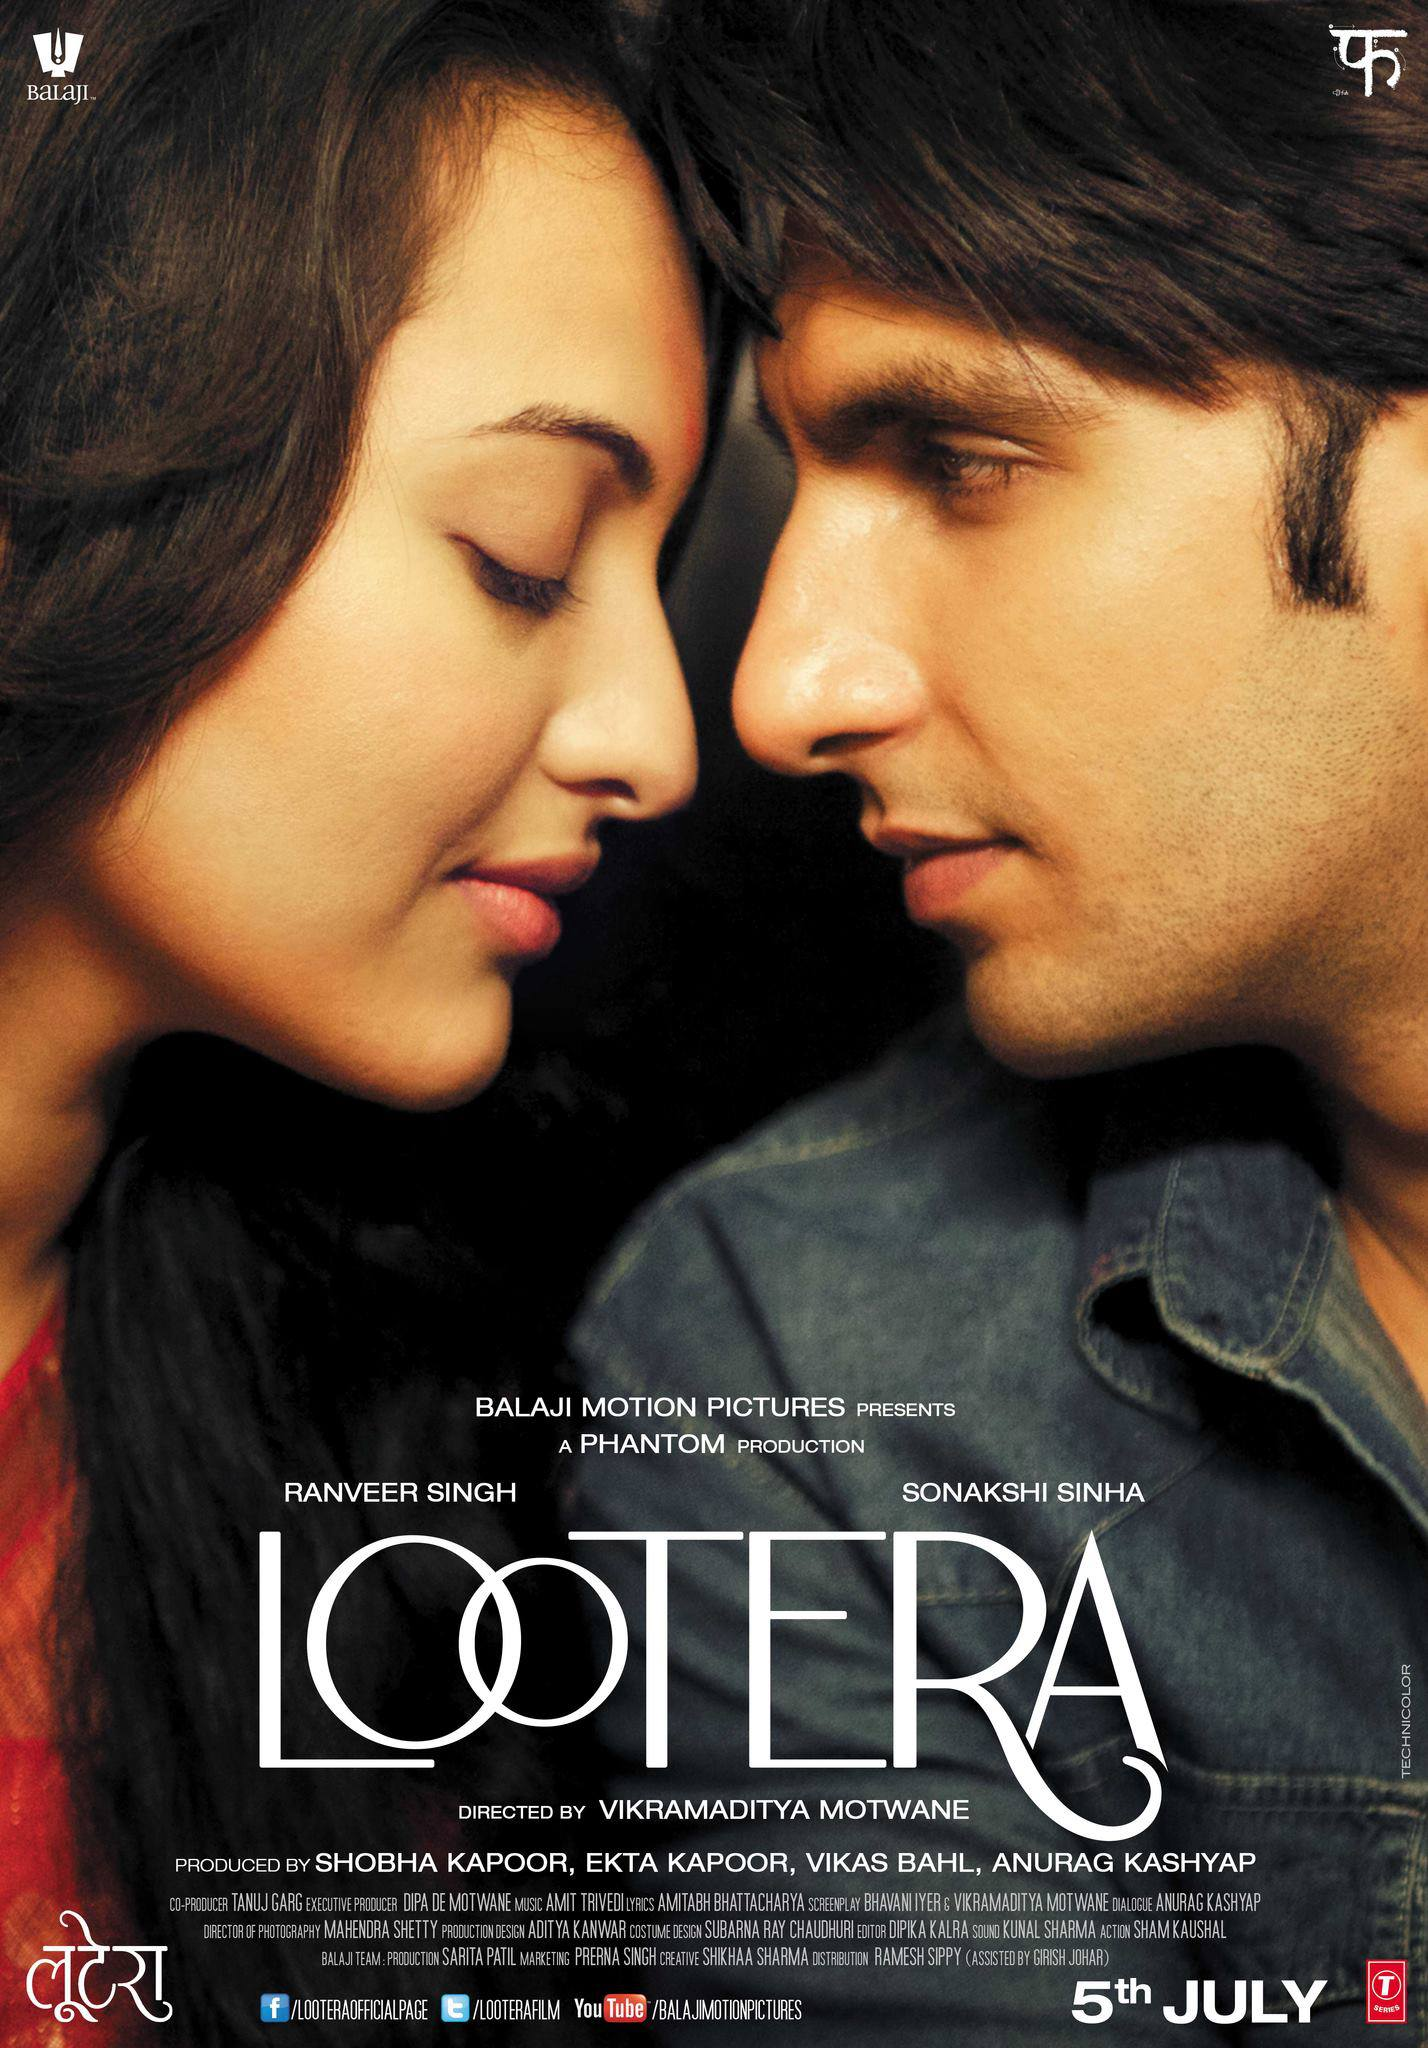 Lootera - Movie Poster #3 (Original)